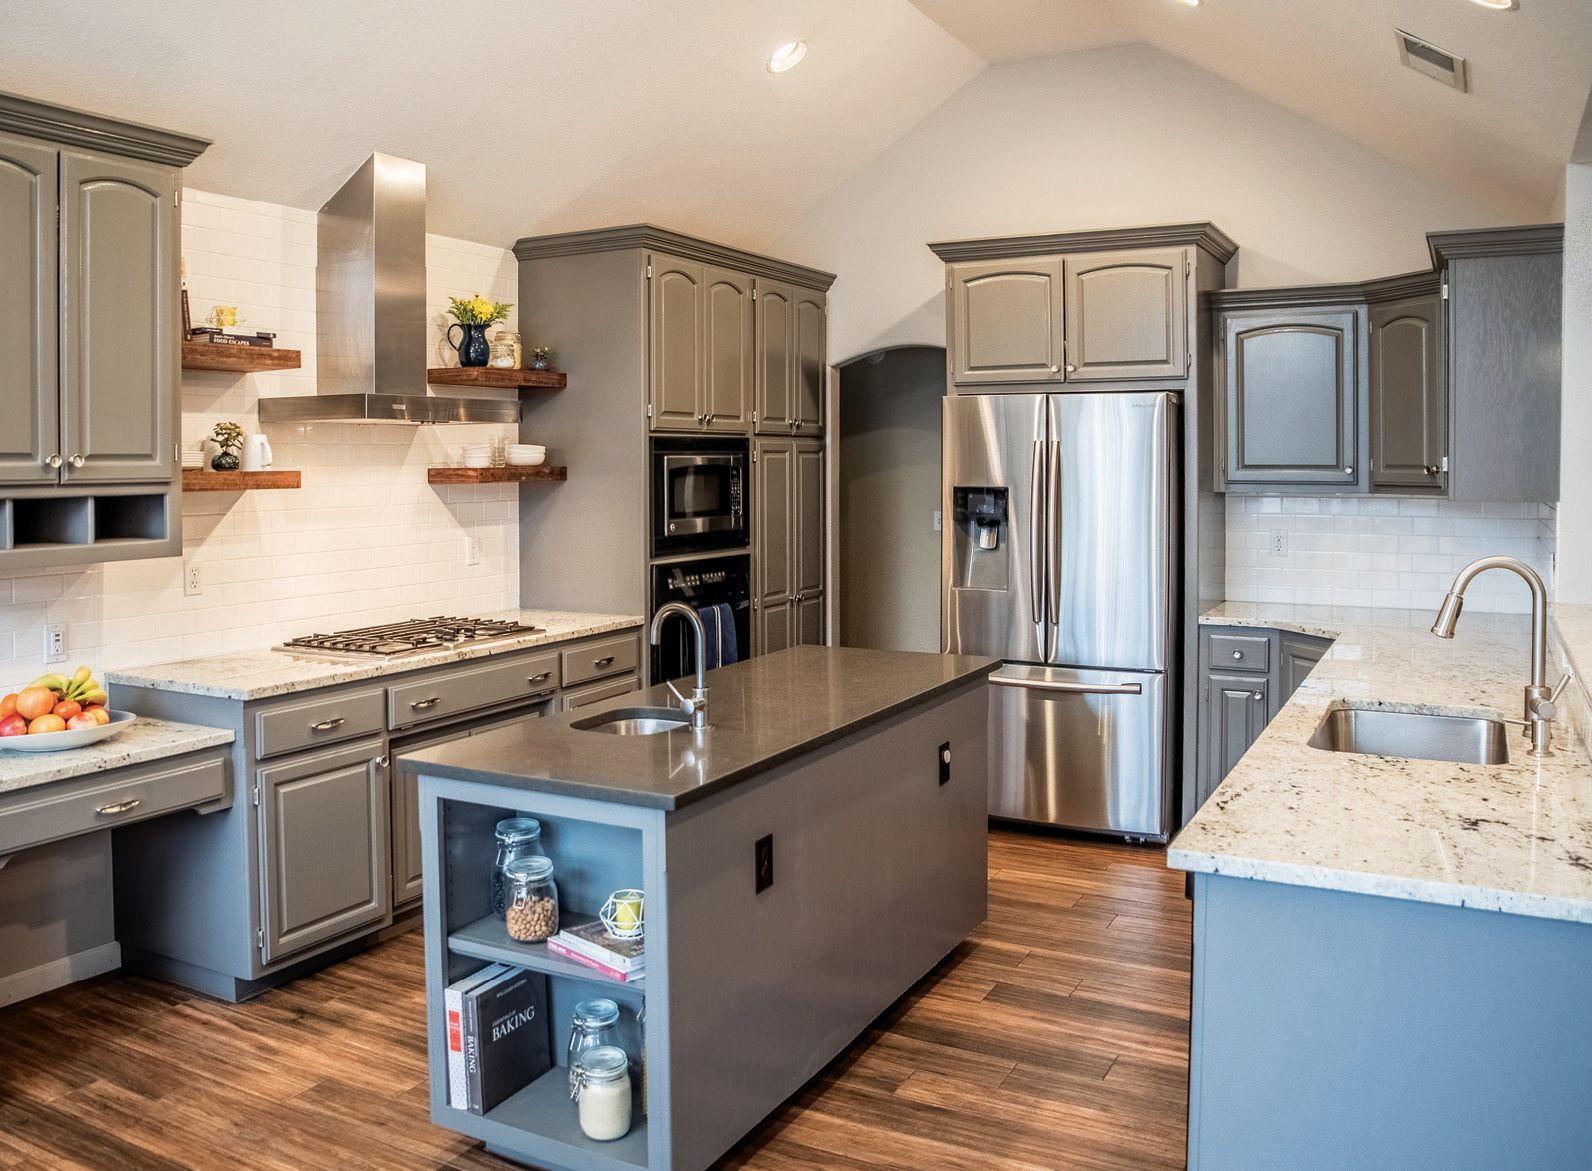 a practical guide to kitchen renovation with images kitchen renovation contemporary kitchen on kitchen remodel timeline id=47805